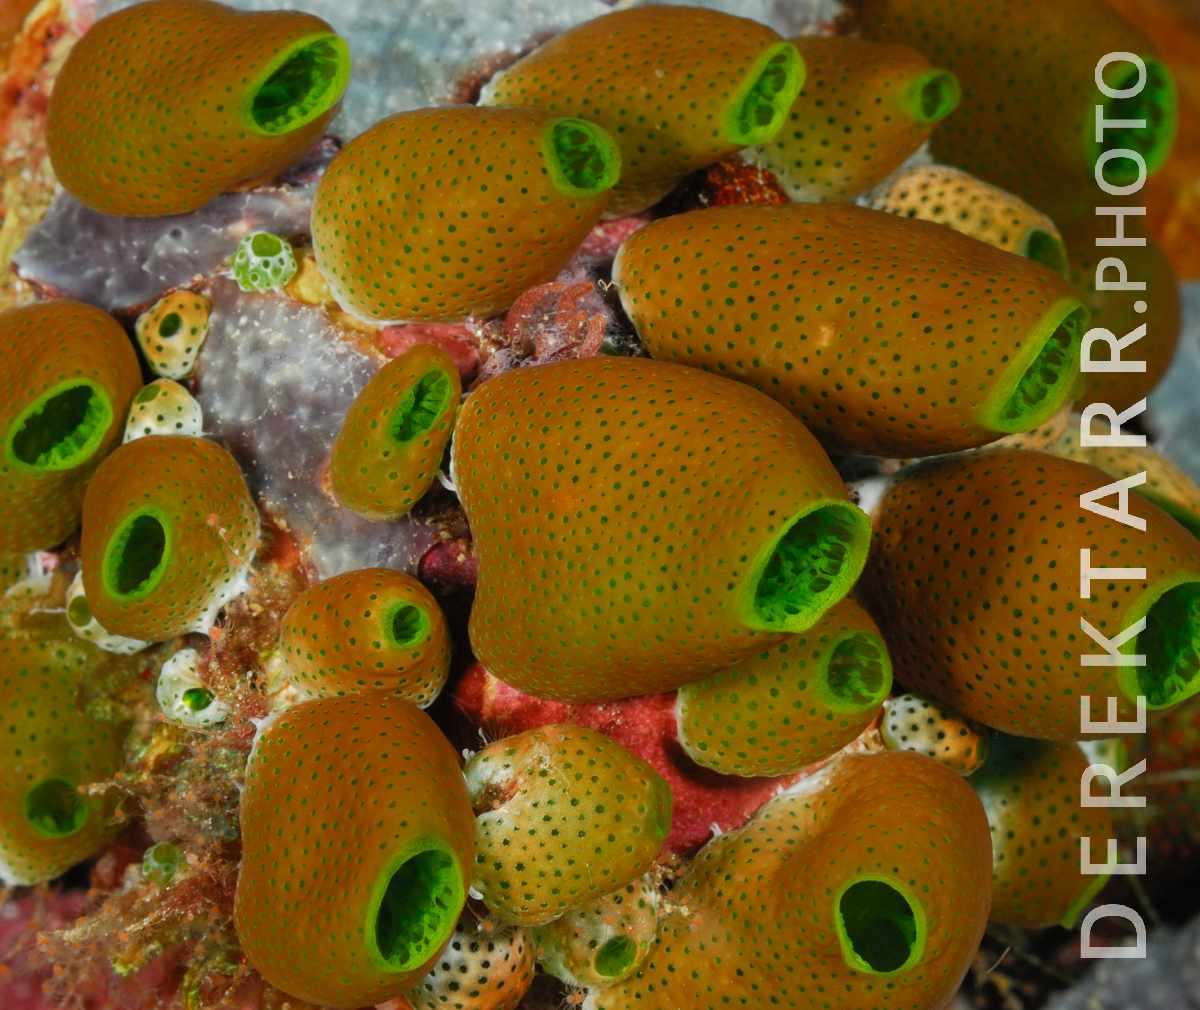 large view of Sea Squirts